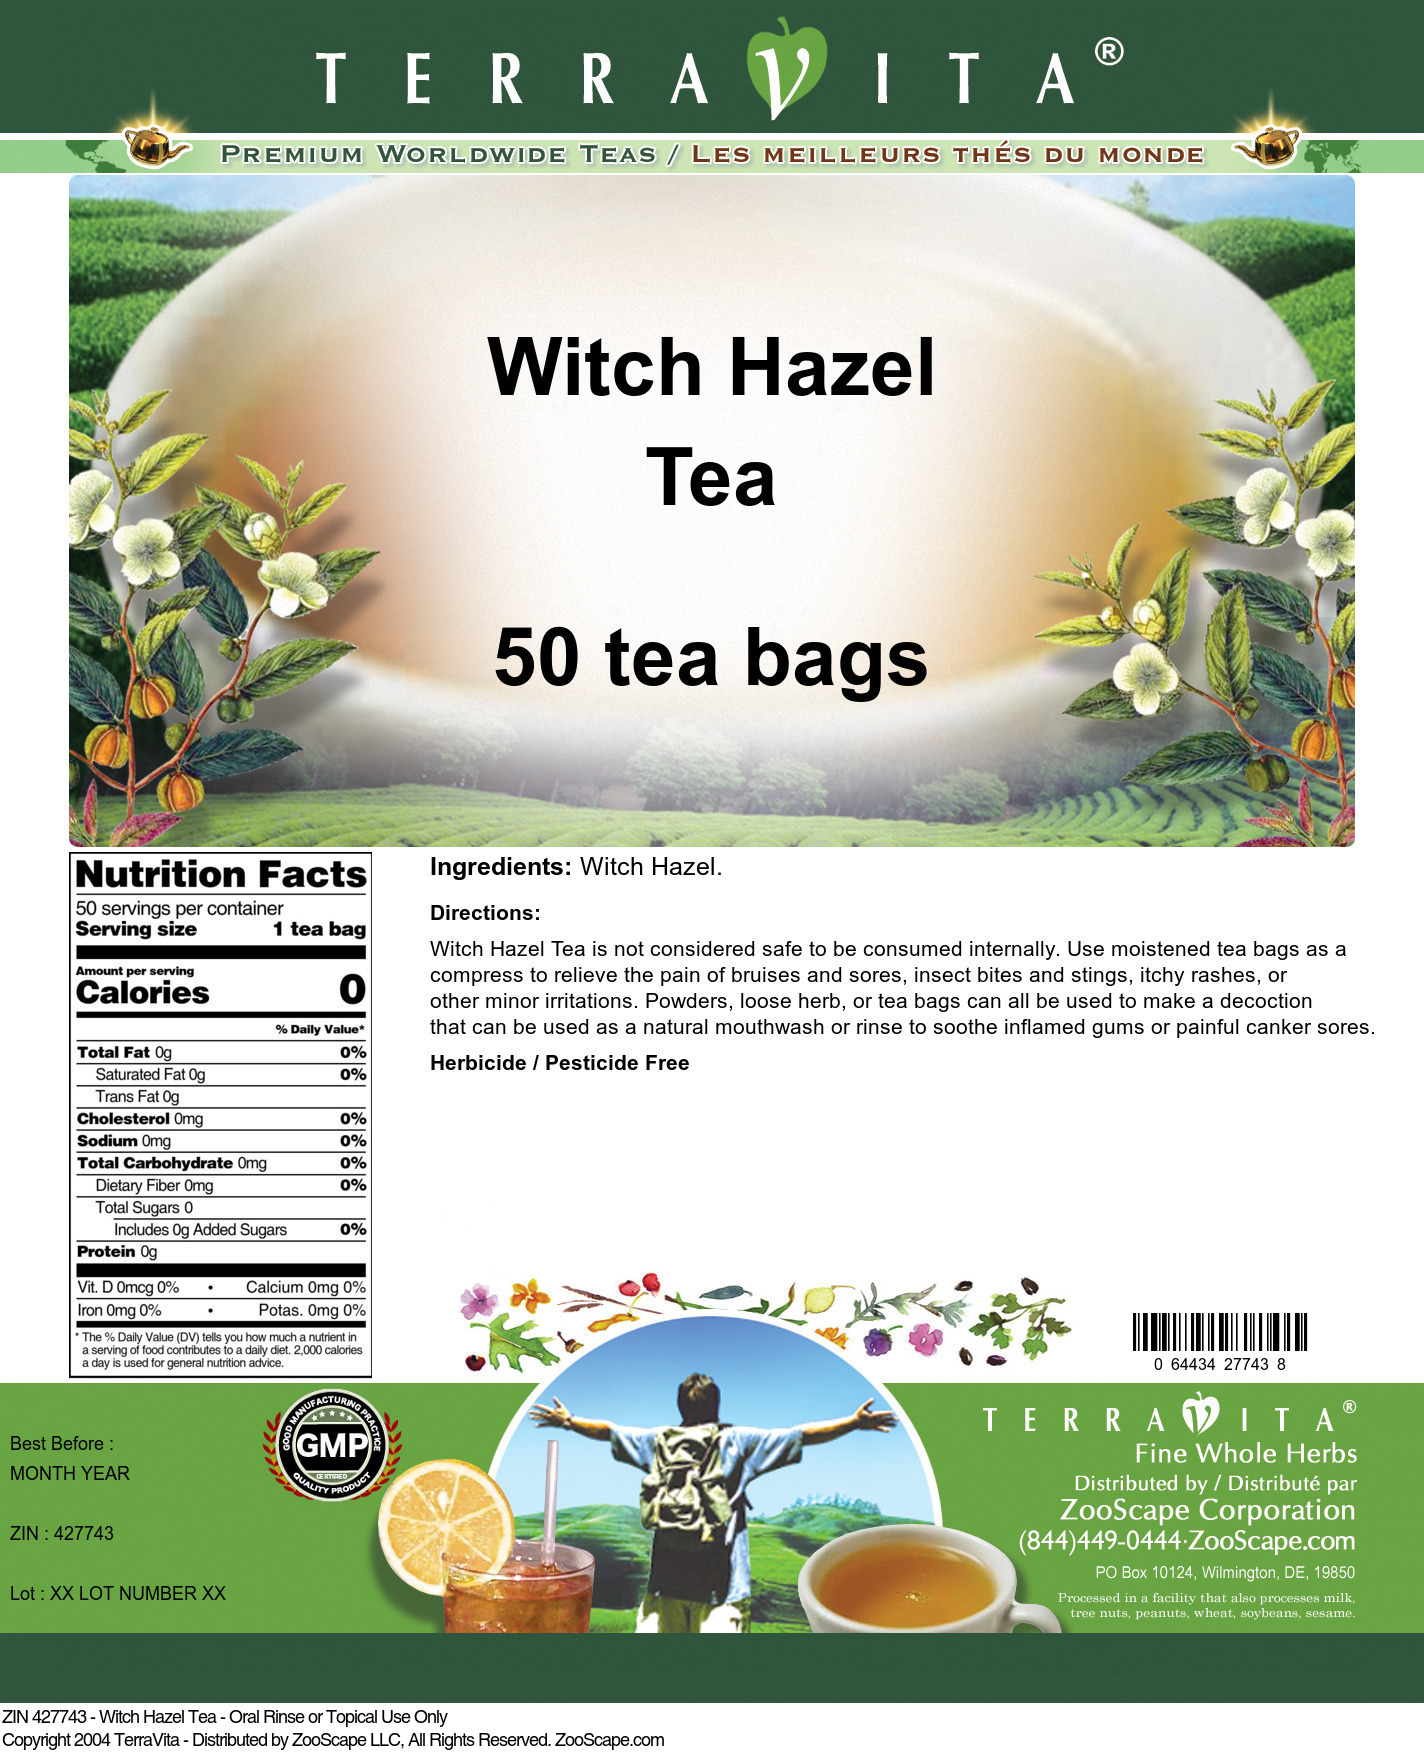 Witch Hazel Tea - Oral Rinse or Topical Use Only